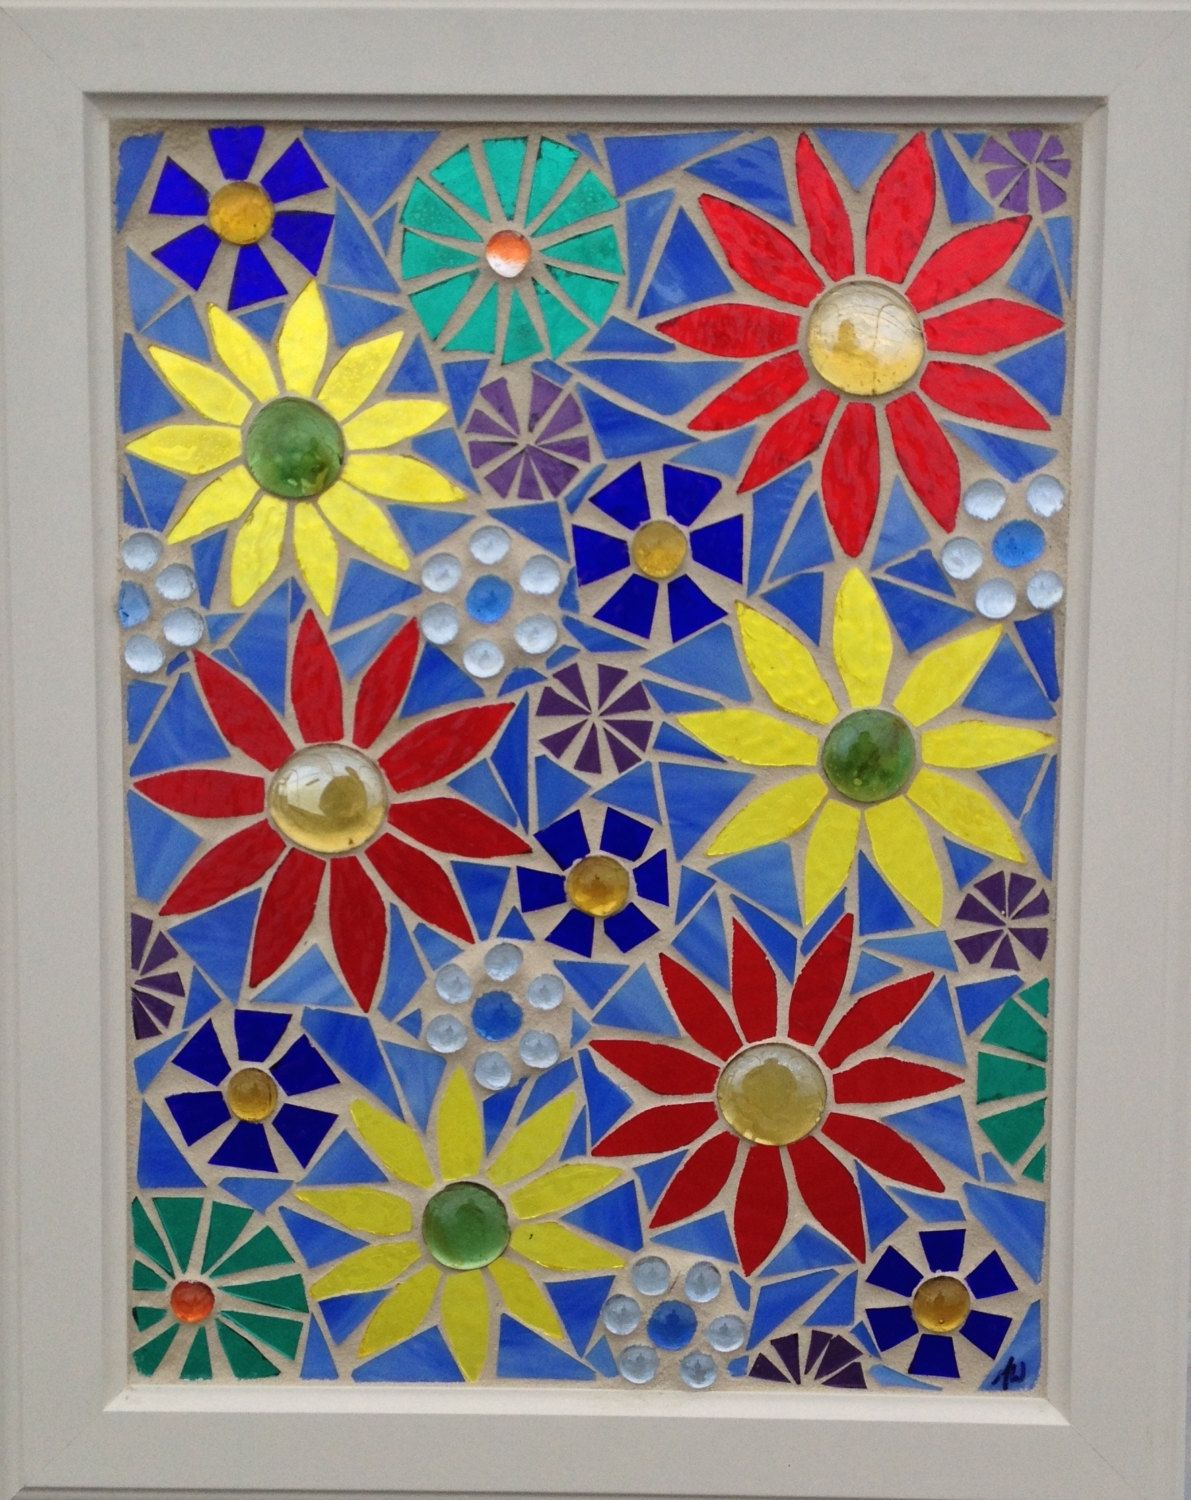 Daisy Stained Gl Mosaic Panel Colorful Daisies Home Decor Window Hanging By Niagaraglmosaics